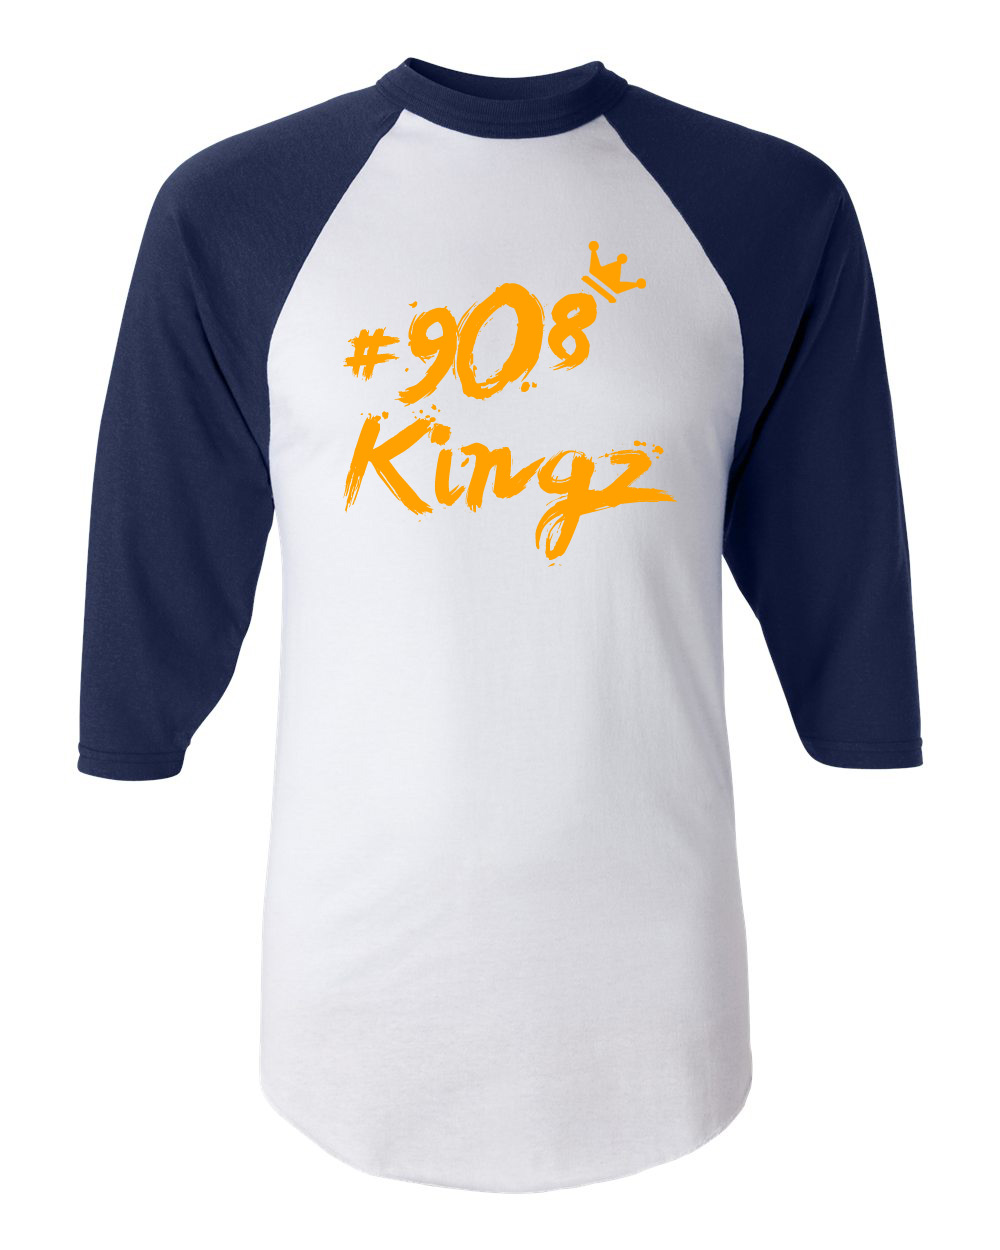 908 Kingz - Baseball Tee (blue and orange)